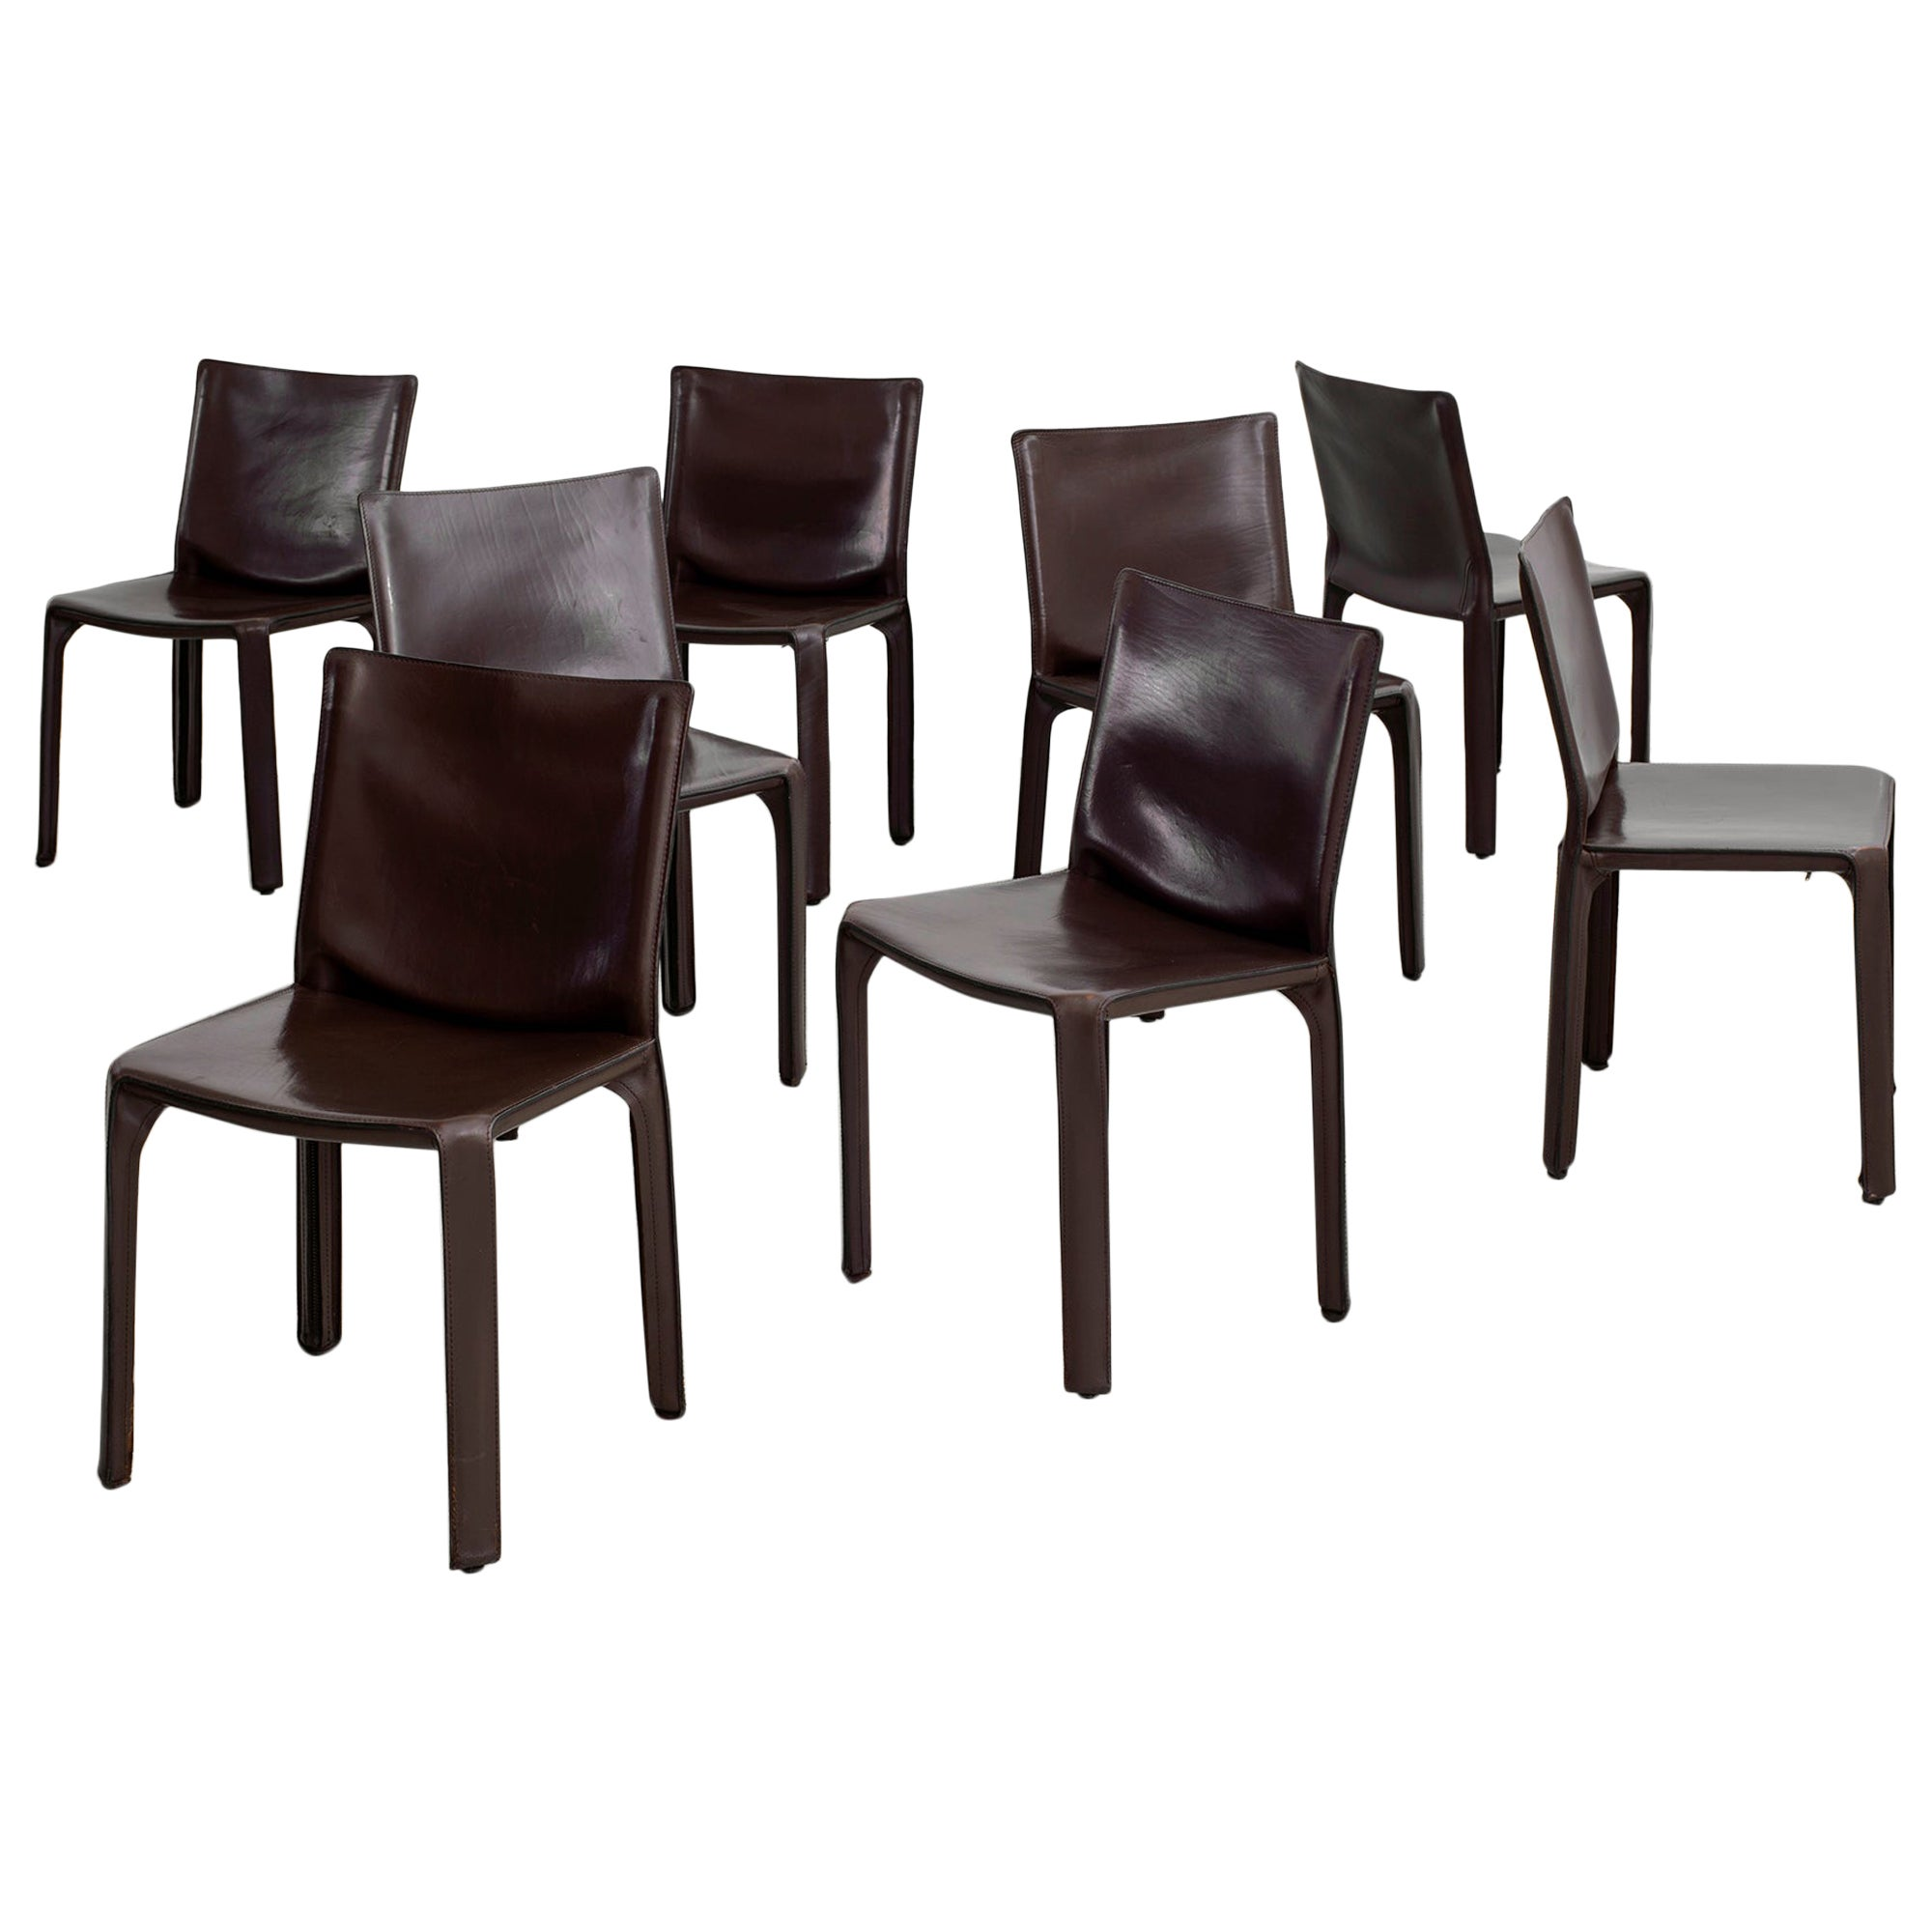 """Mario Bellini """"Cab"""" Chairs in Chocolate Leather"""